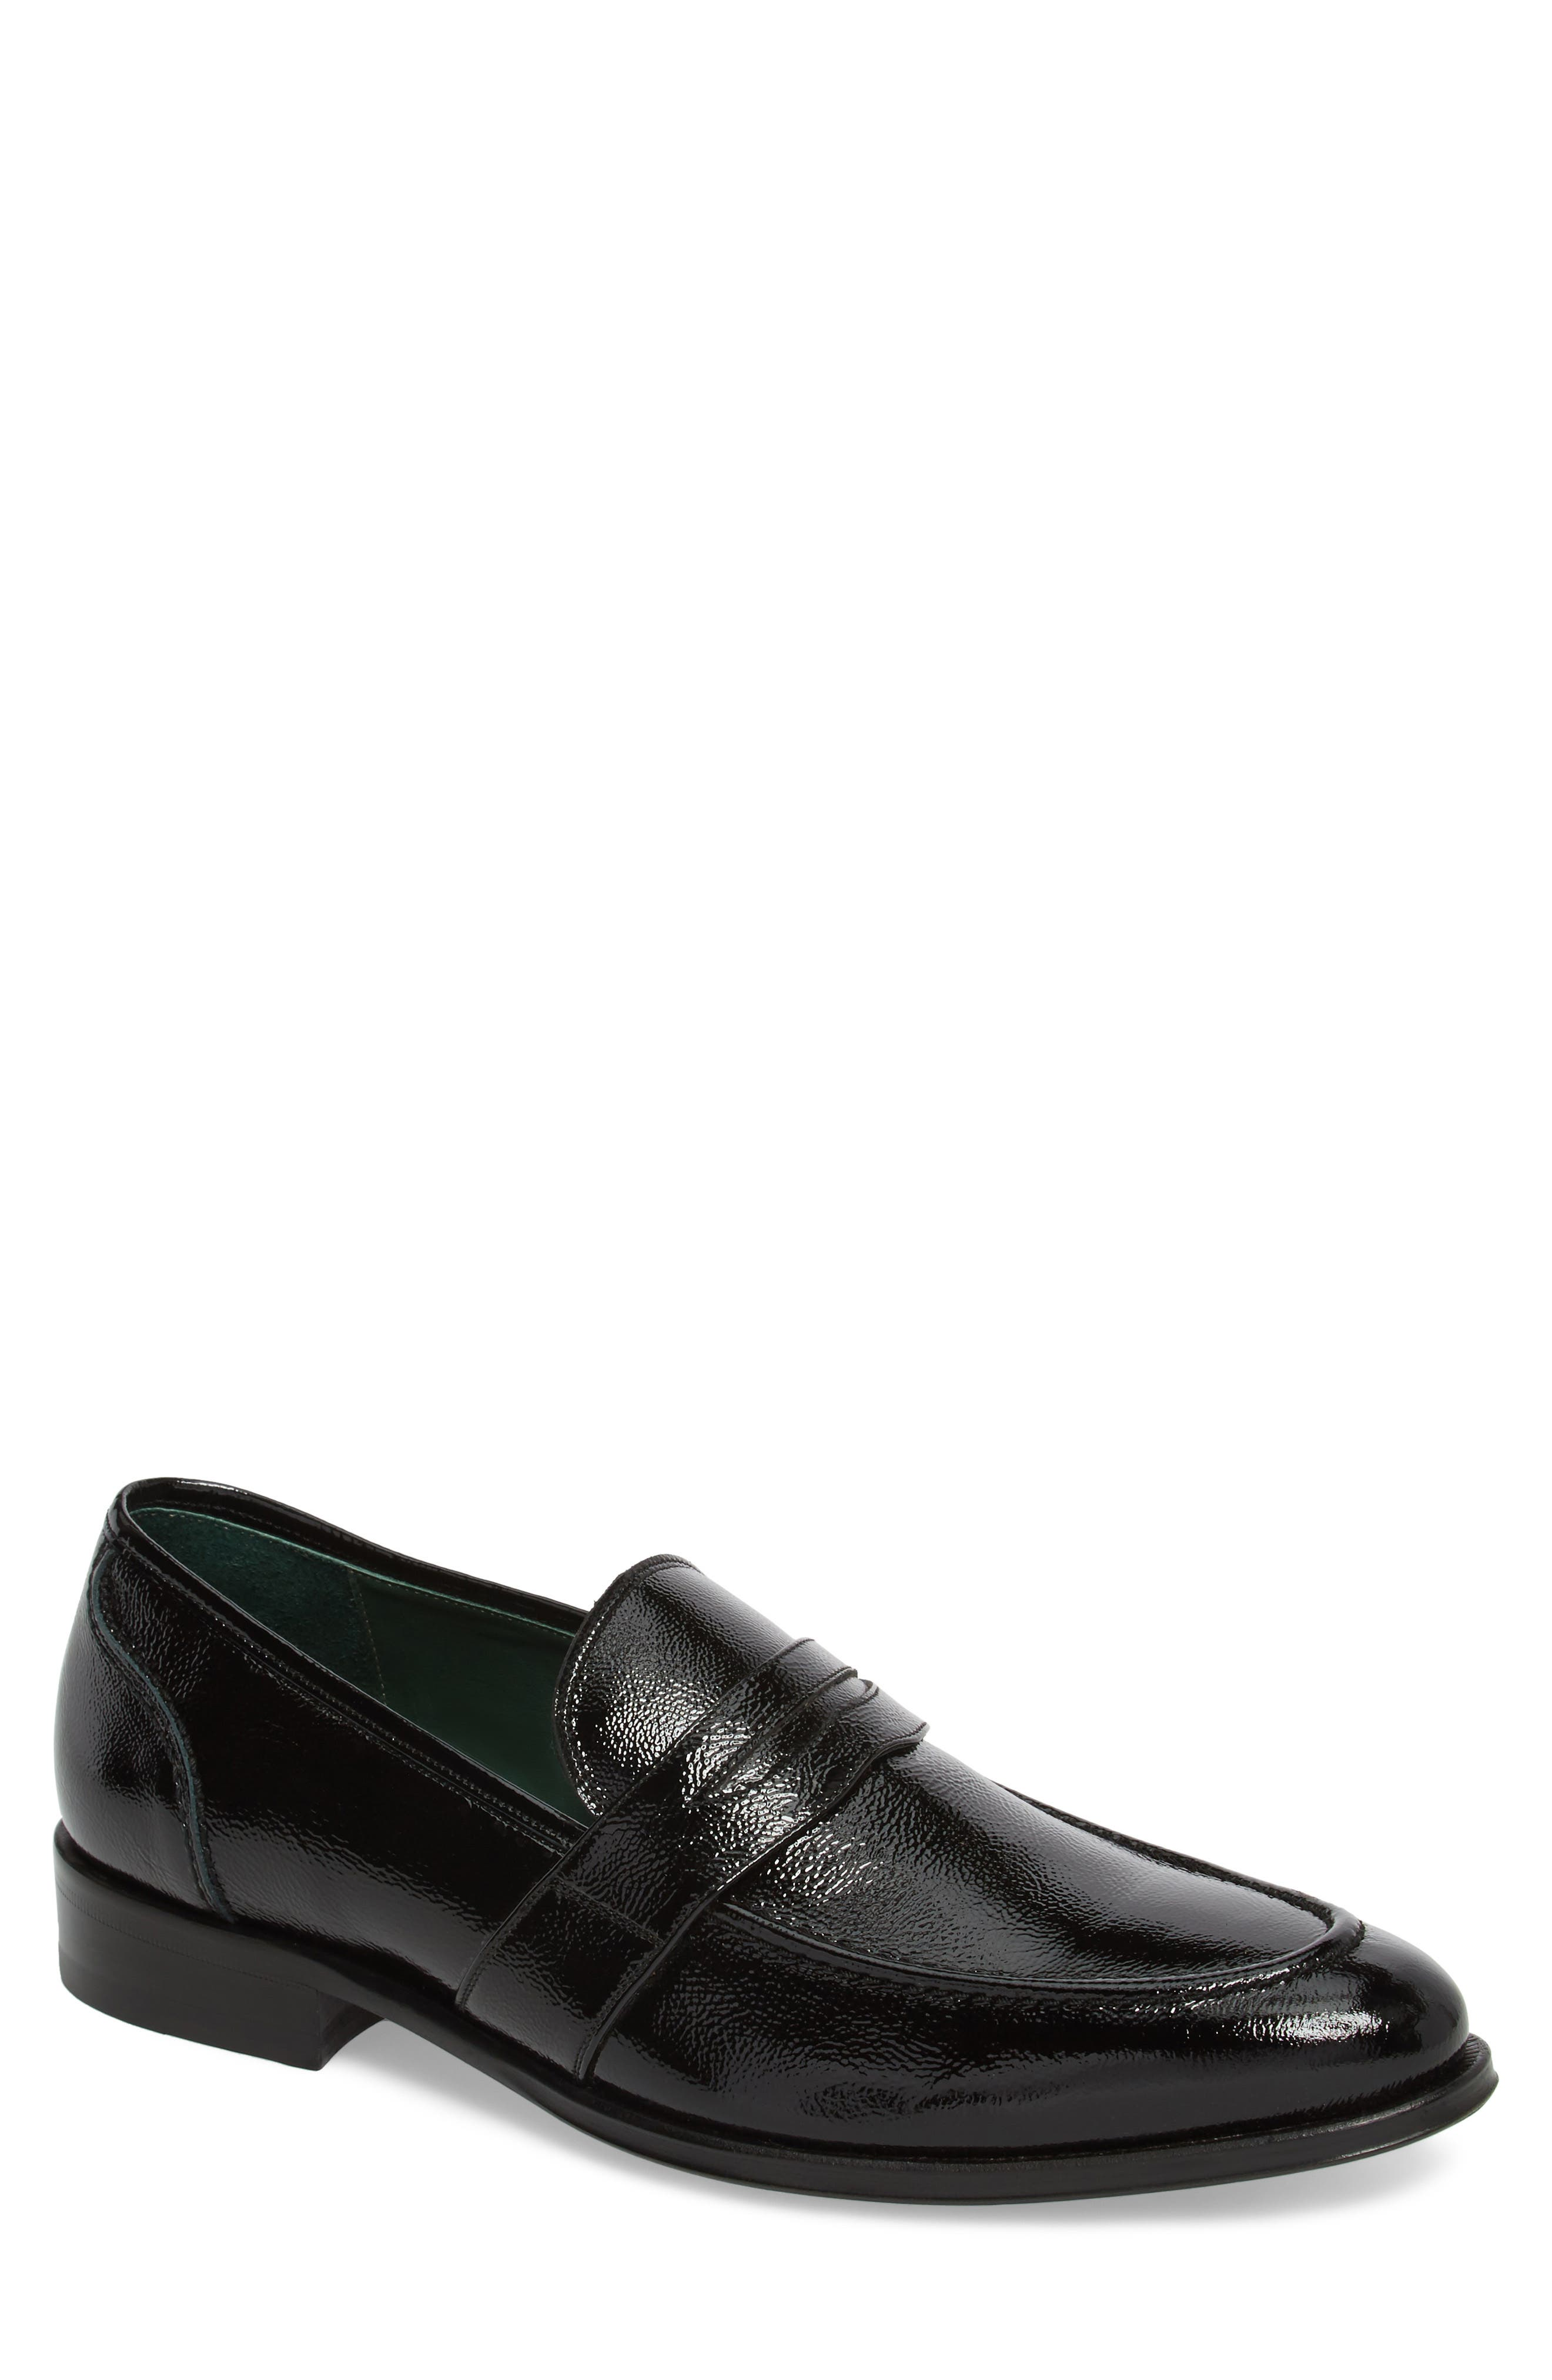 Argos Penny Loafer,                         Main,                         color, Black Patent Leather